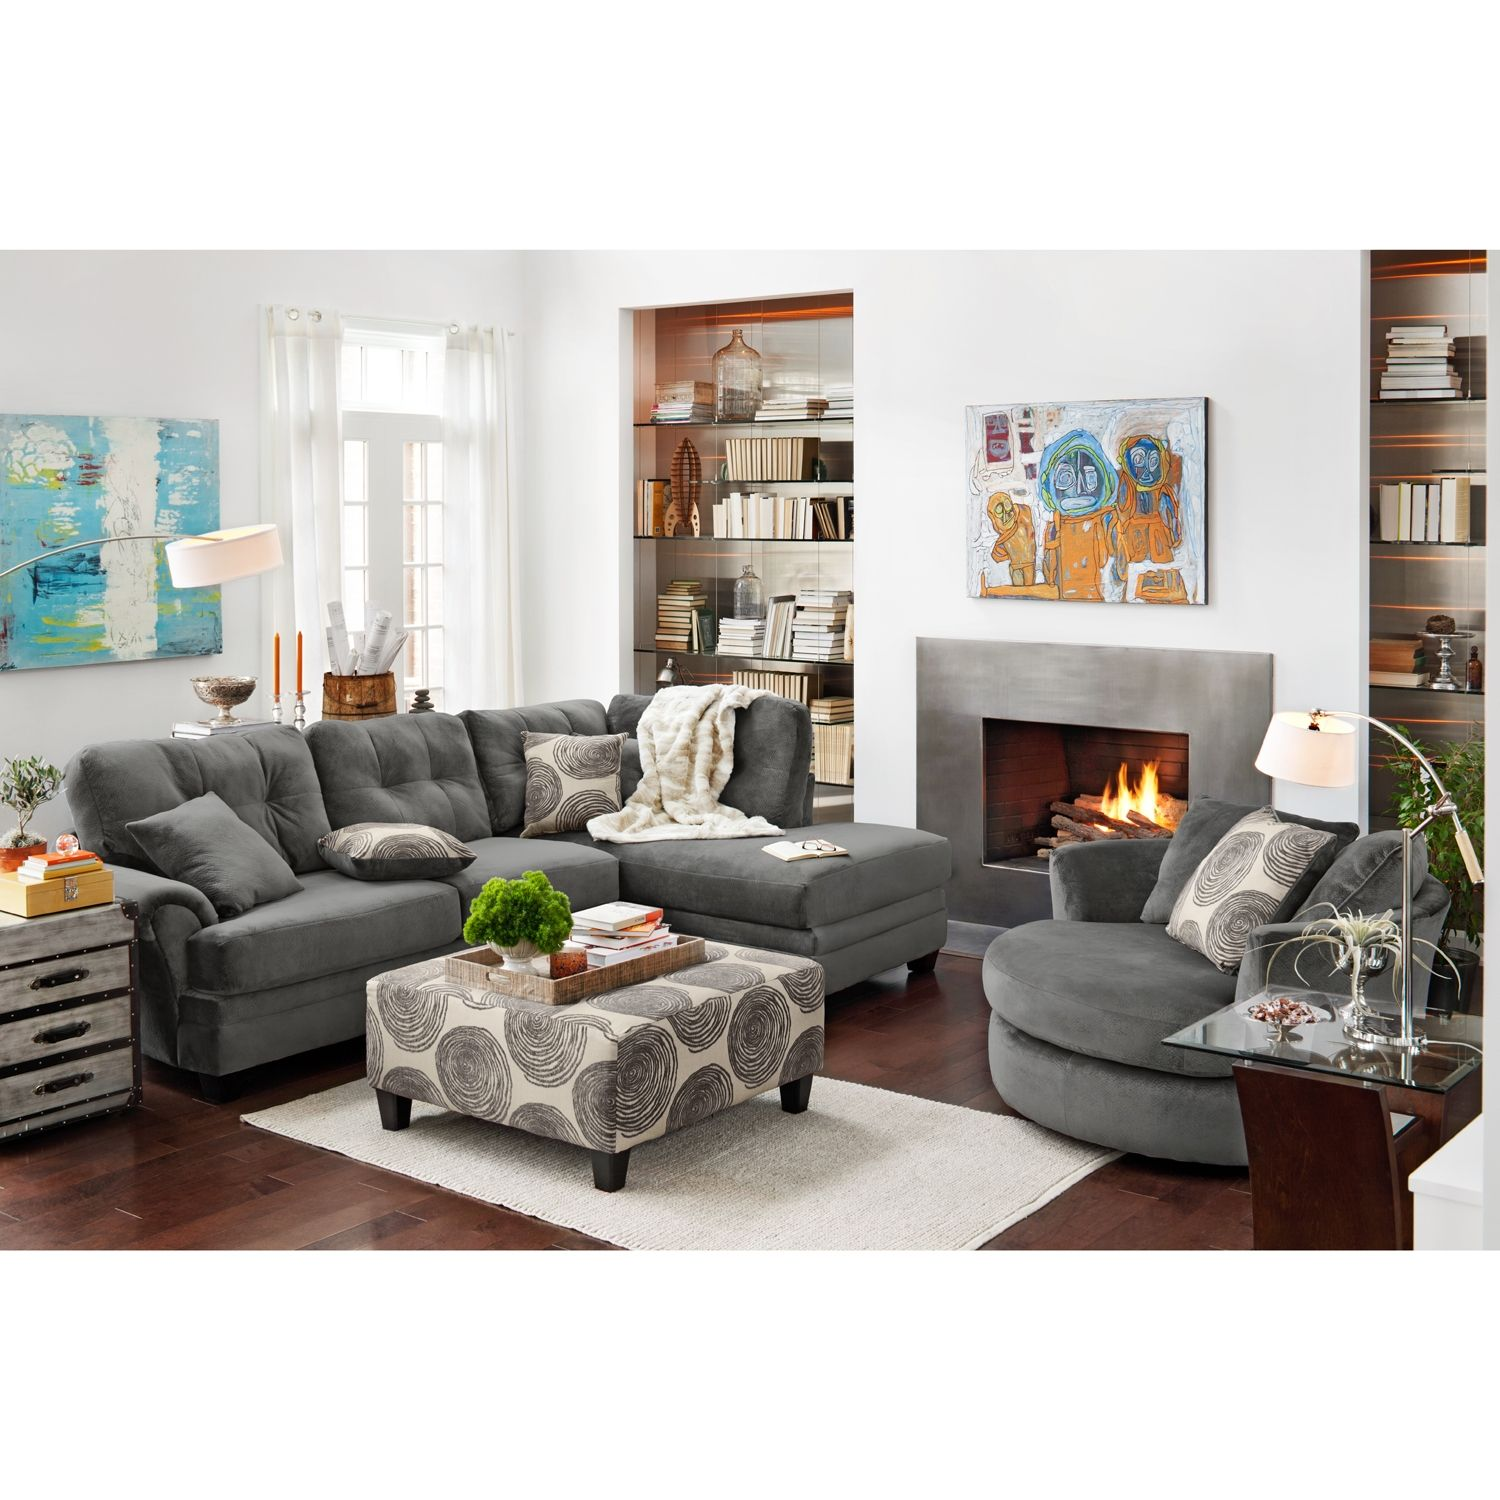 Value City Furniture Cordoba 2 Piece Sectional Cocktail Ottoman